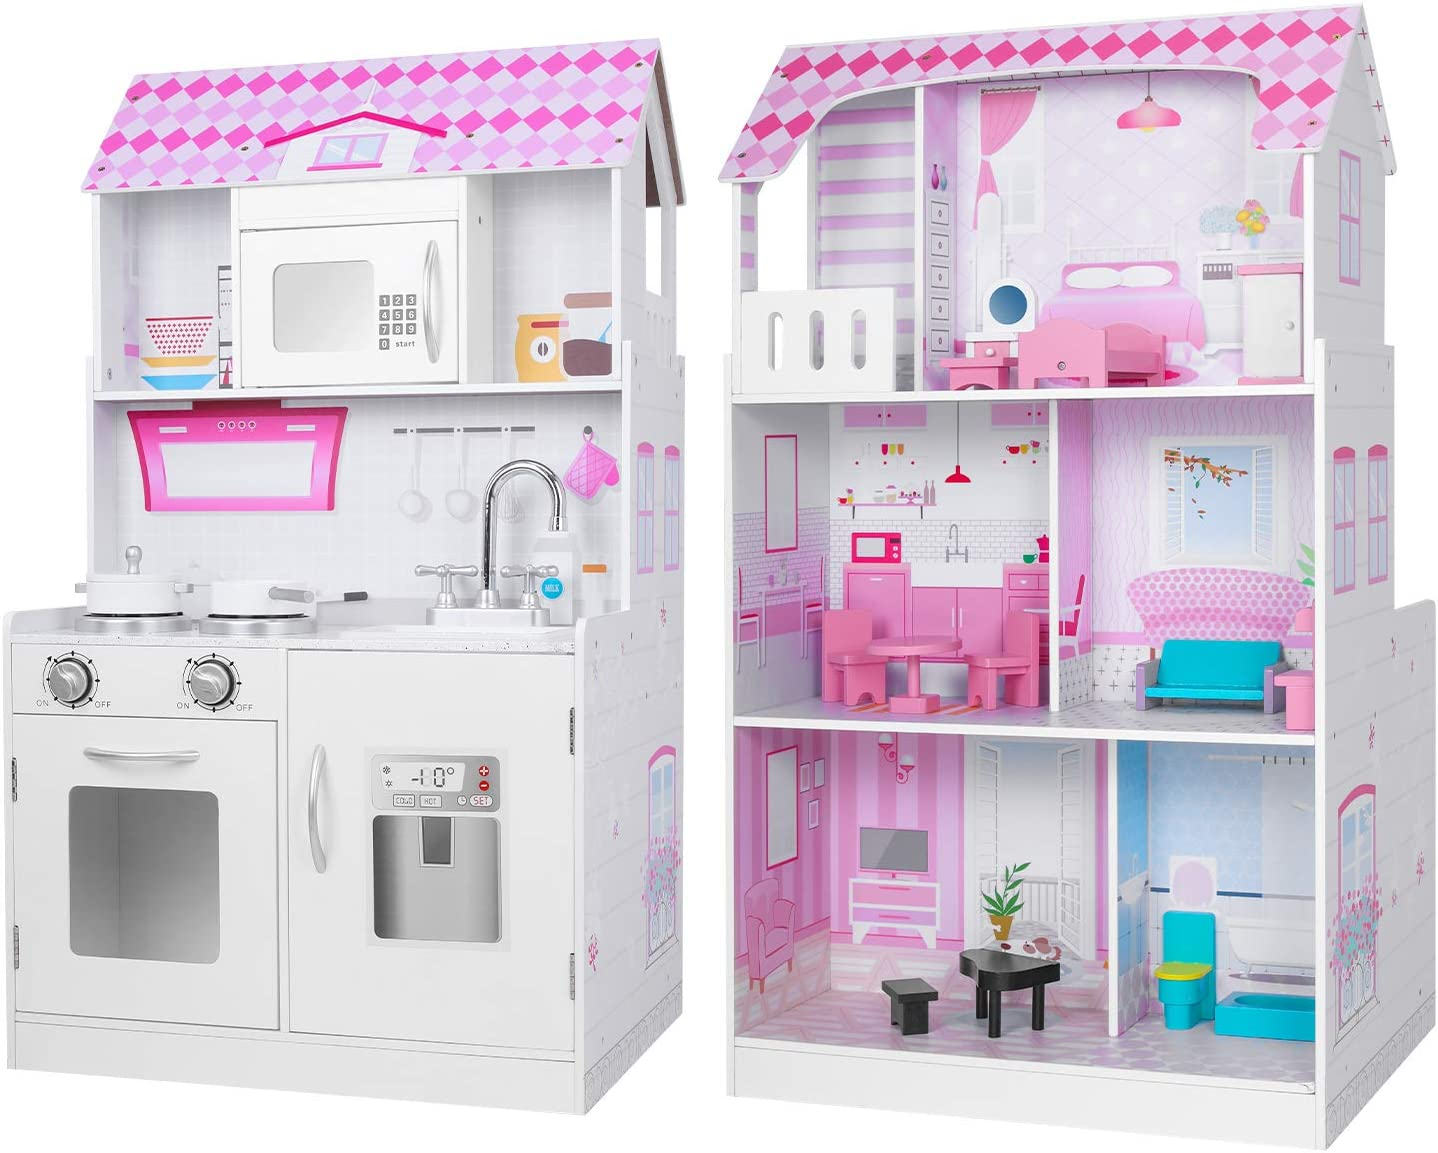 BABLE Wooden Dollhouse & Play Kitchen 2 in 1, Double-Sided, Kids Kitchen Playset, Play Kitchen for Toddlers with 13-Pc Furniture and 2-Pc Kitchen Accessories Set, Pink / White